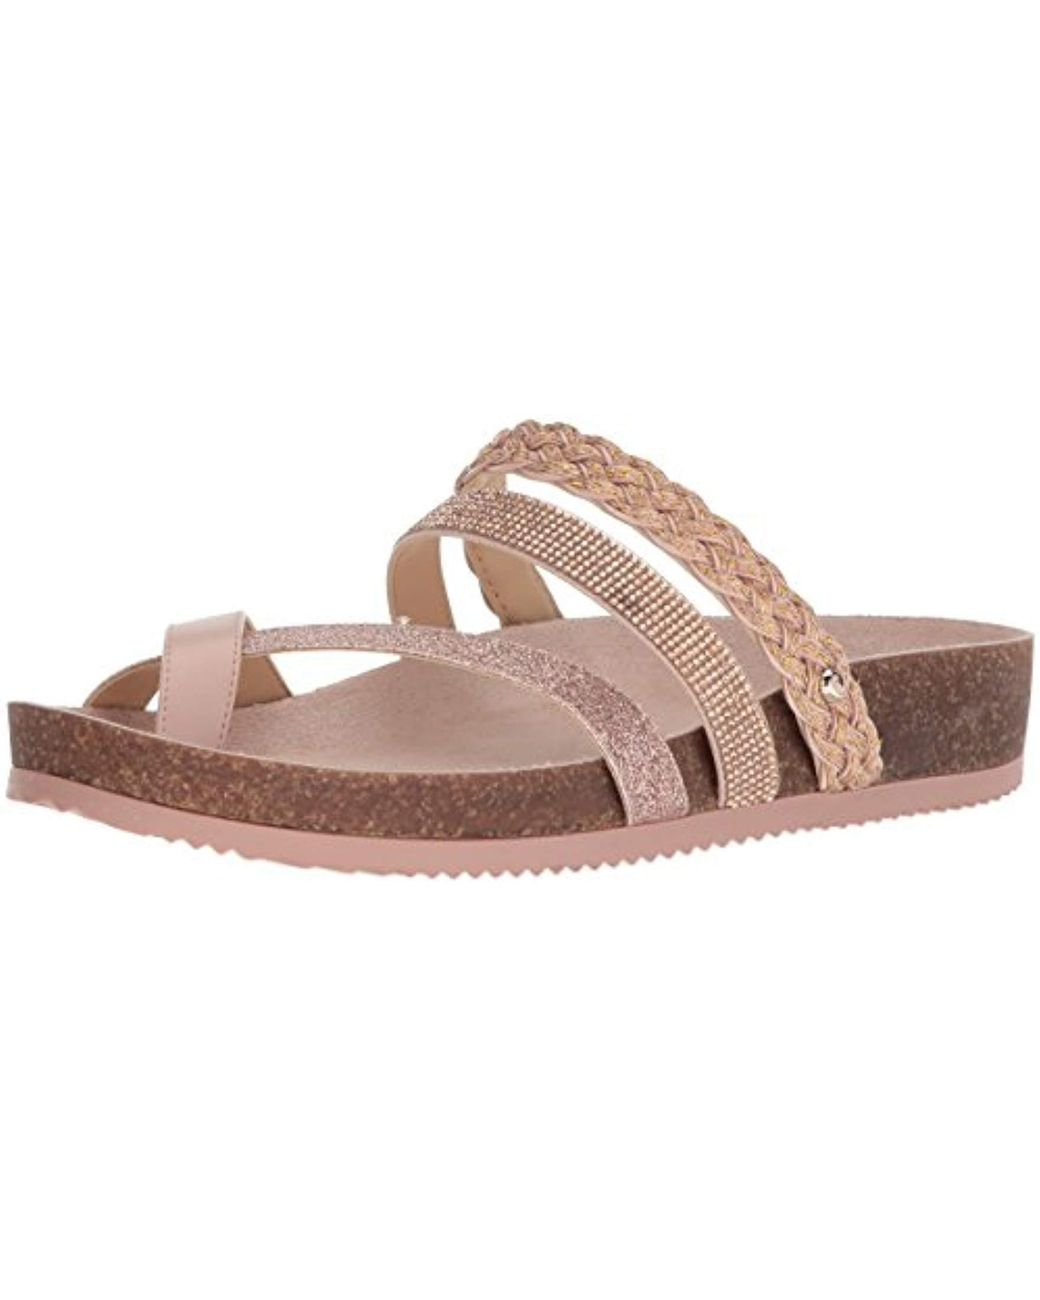 761910dea760 Lyst - Circus by Sam Edelman Oakley Slide Sandal in Pink - Save 80%